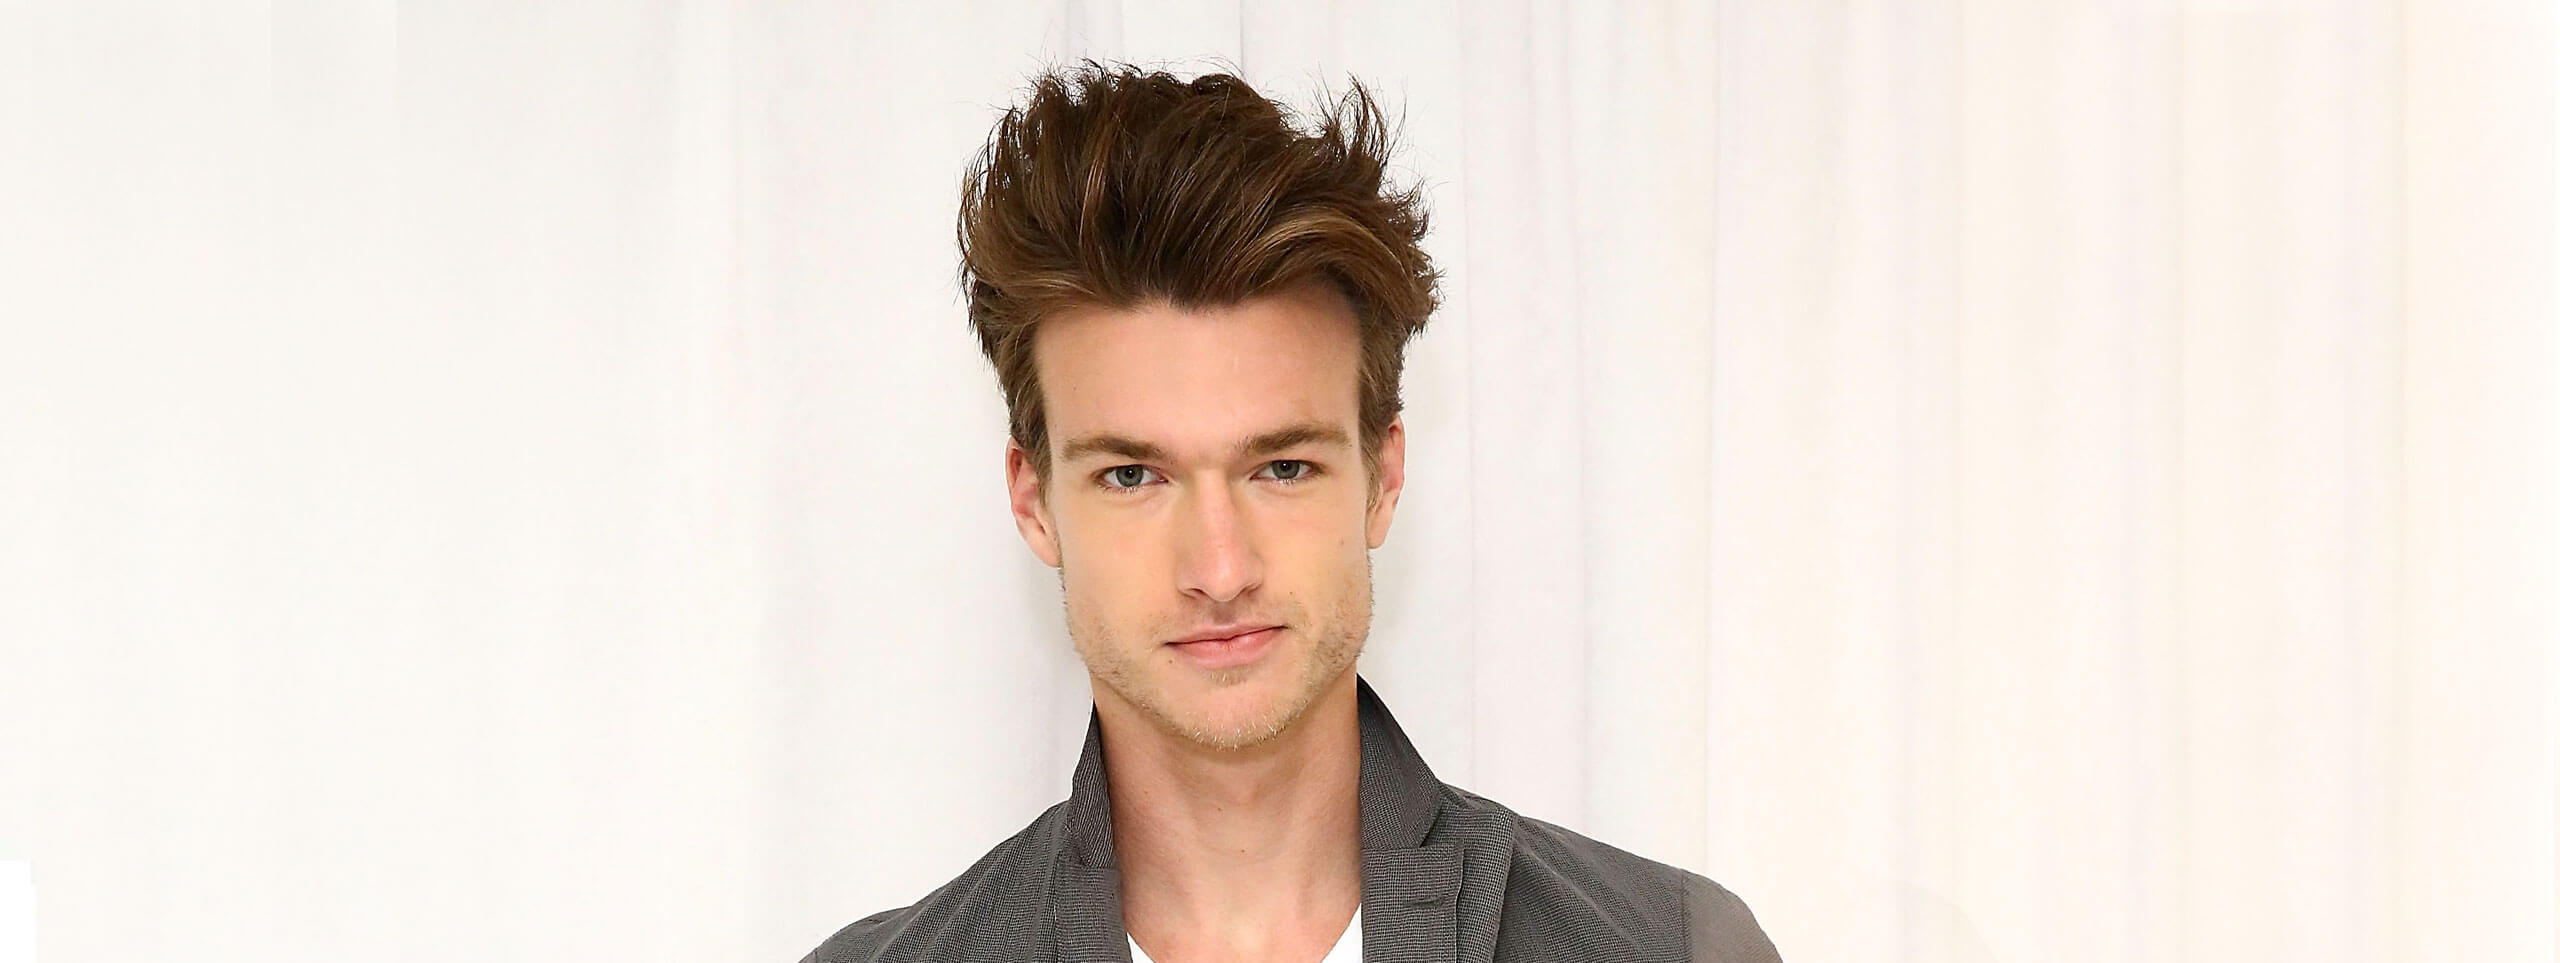 Man with short dark hairstyle, a popular hairstyle trend for men